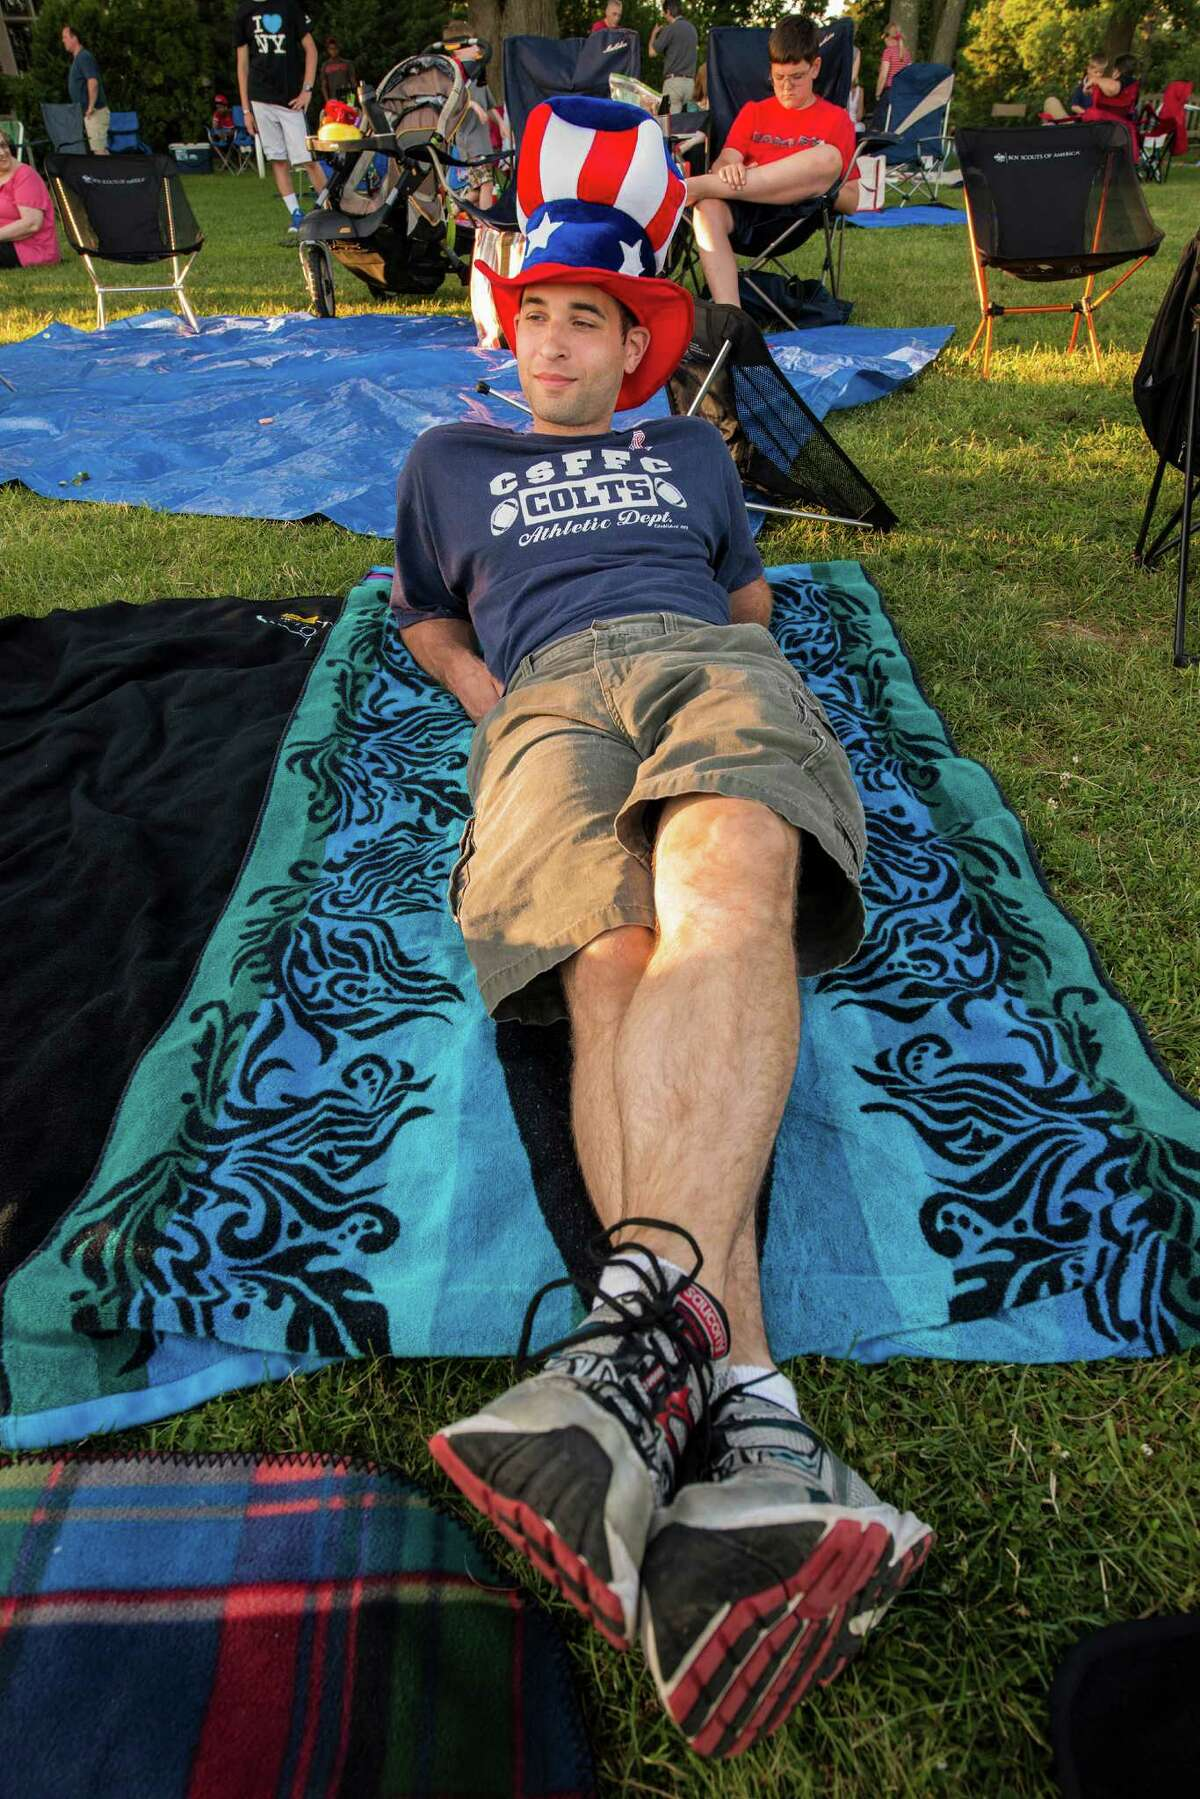 Marcel Nunez waits for the fireworks to start at the annual Family Fourth event held at Waveny Park, New Canaan, CT on Saturday, July 5th, 2014.